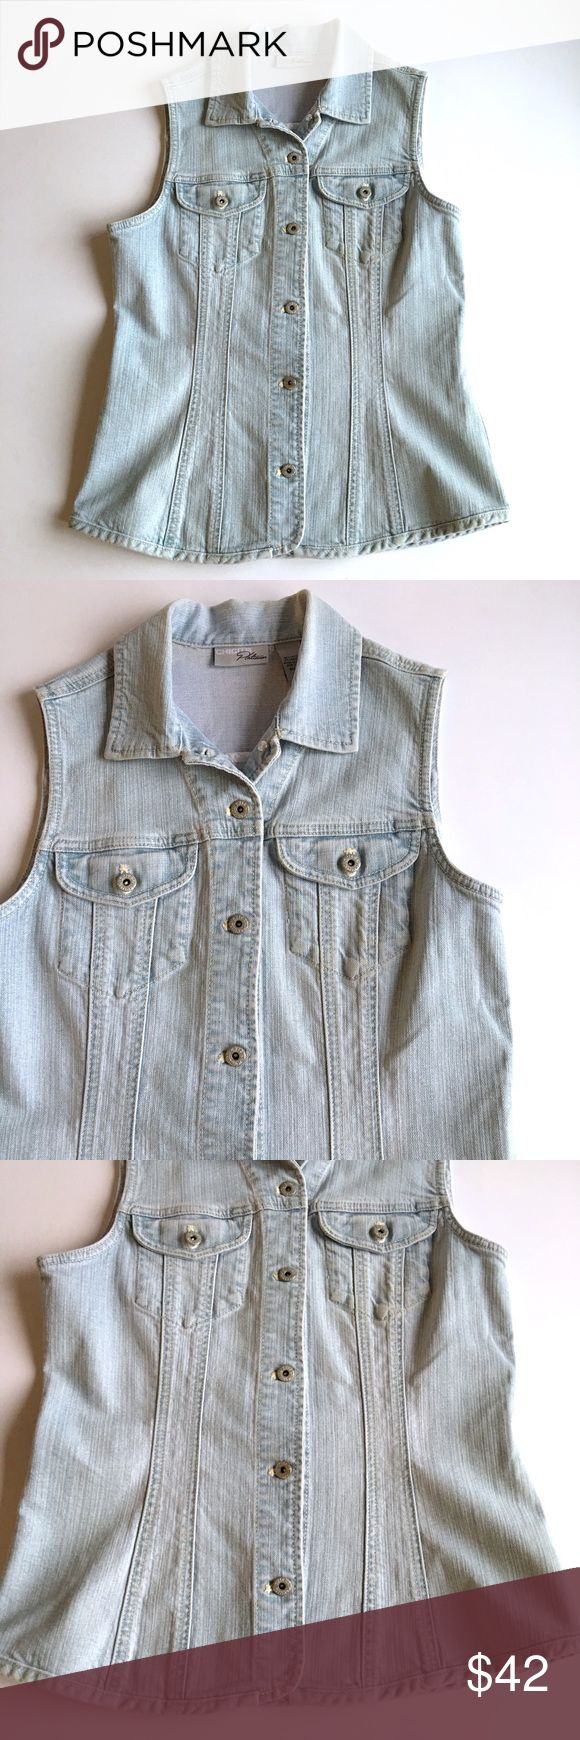 Chico's Platinum Sleeveless Jean Jacket Chico's platinum Sleeveless Jean jacket // Chico's sz 0. Regular size XS or 4, according to Chicos sizing chart // 98% cotton, 2% spandex Chico's Jackets & Coats Jean Jackets